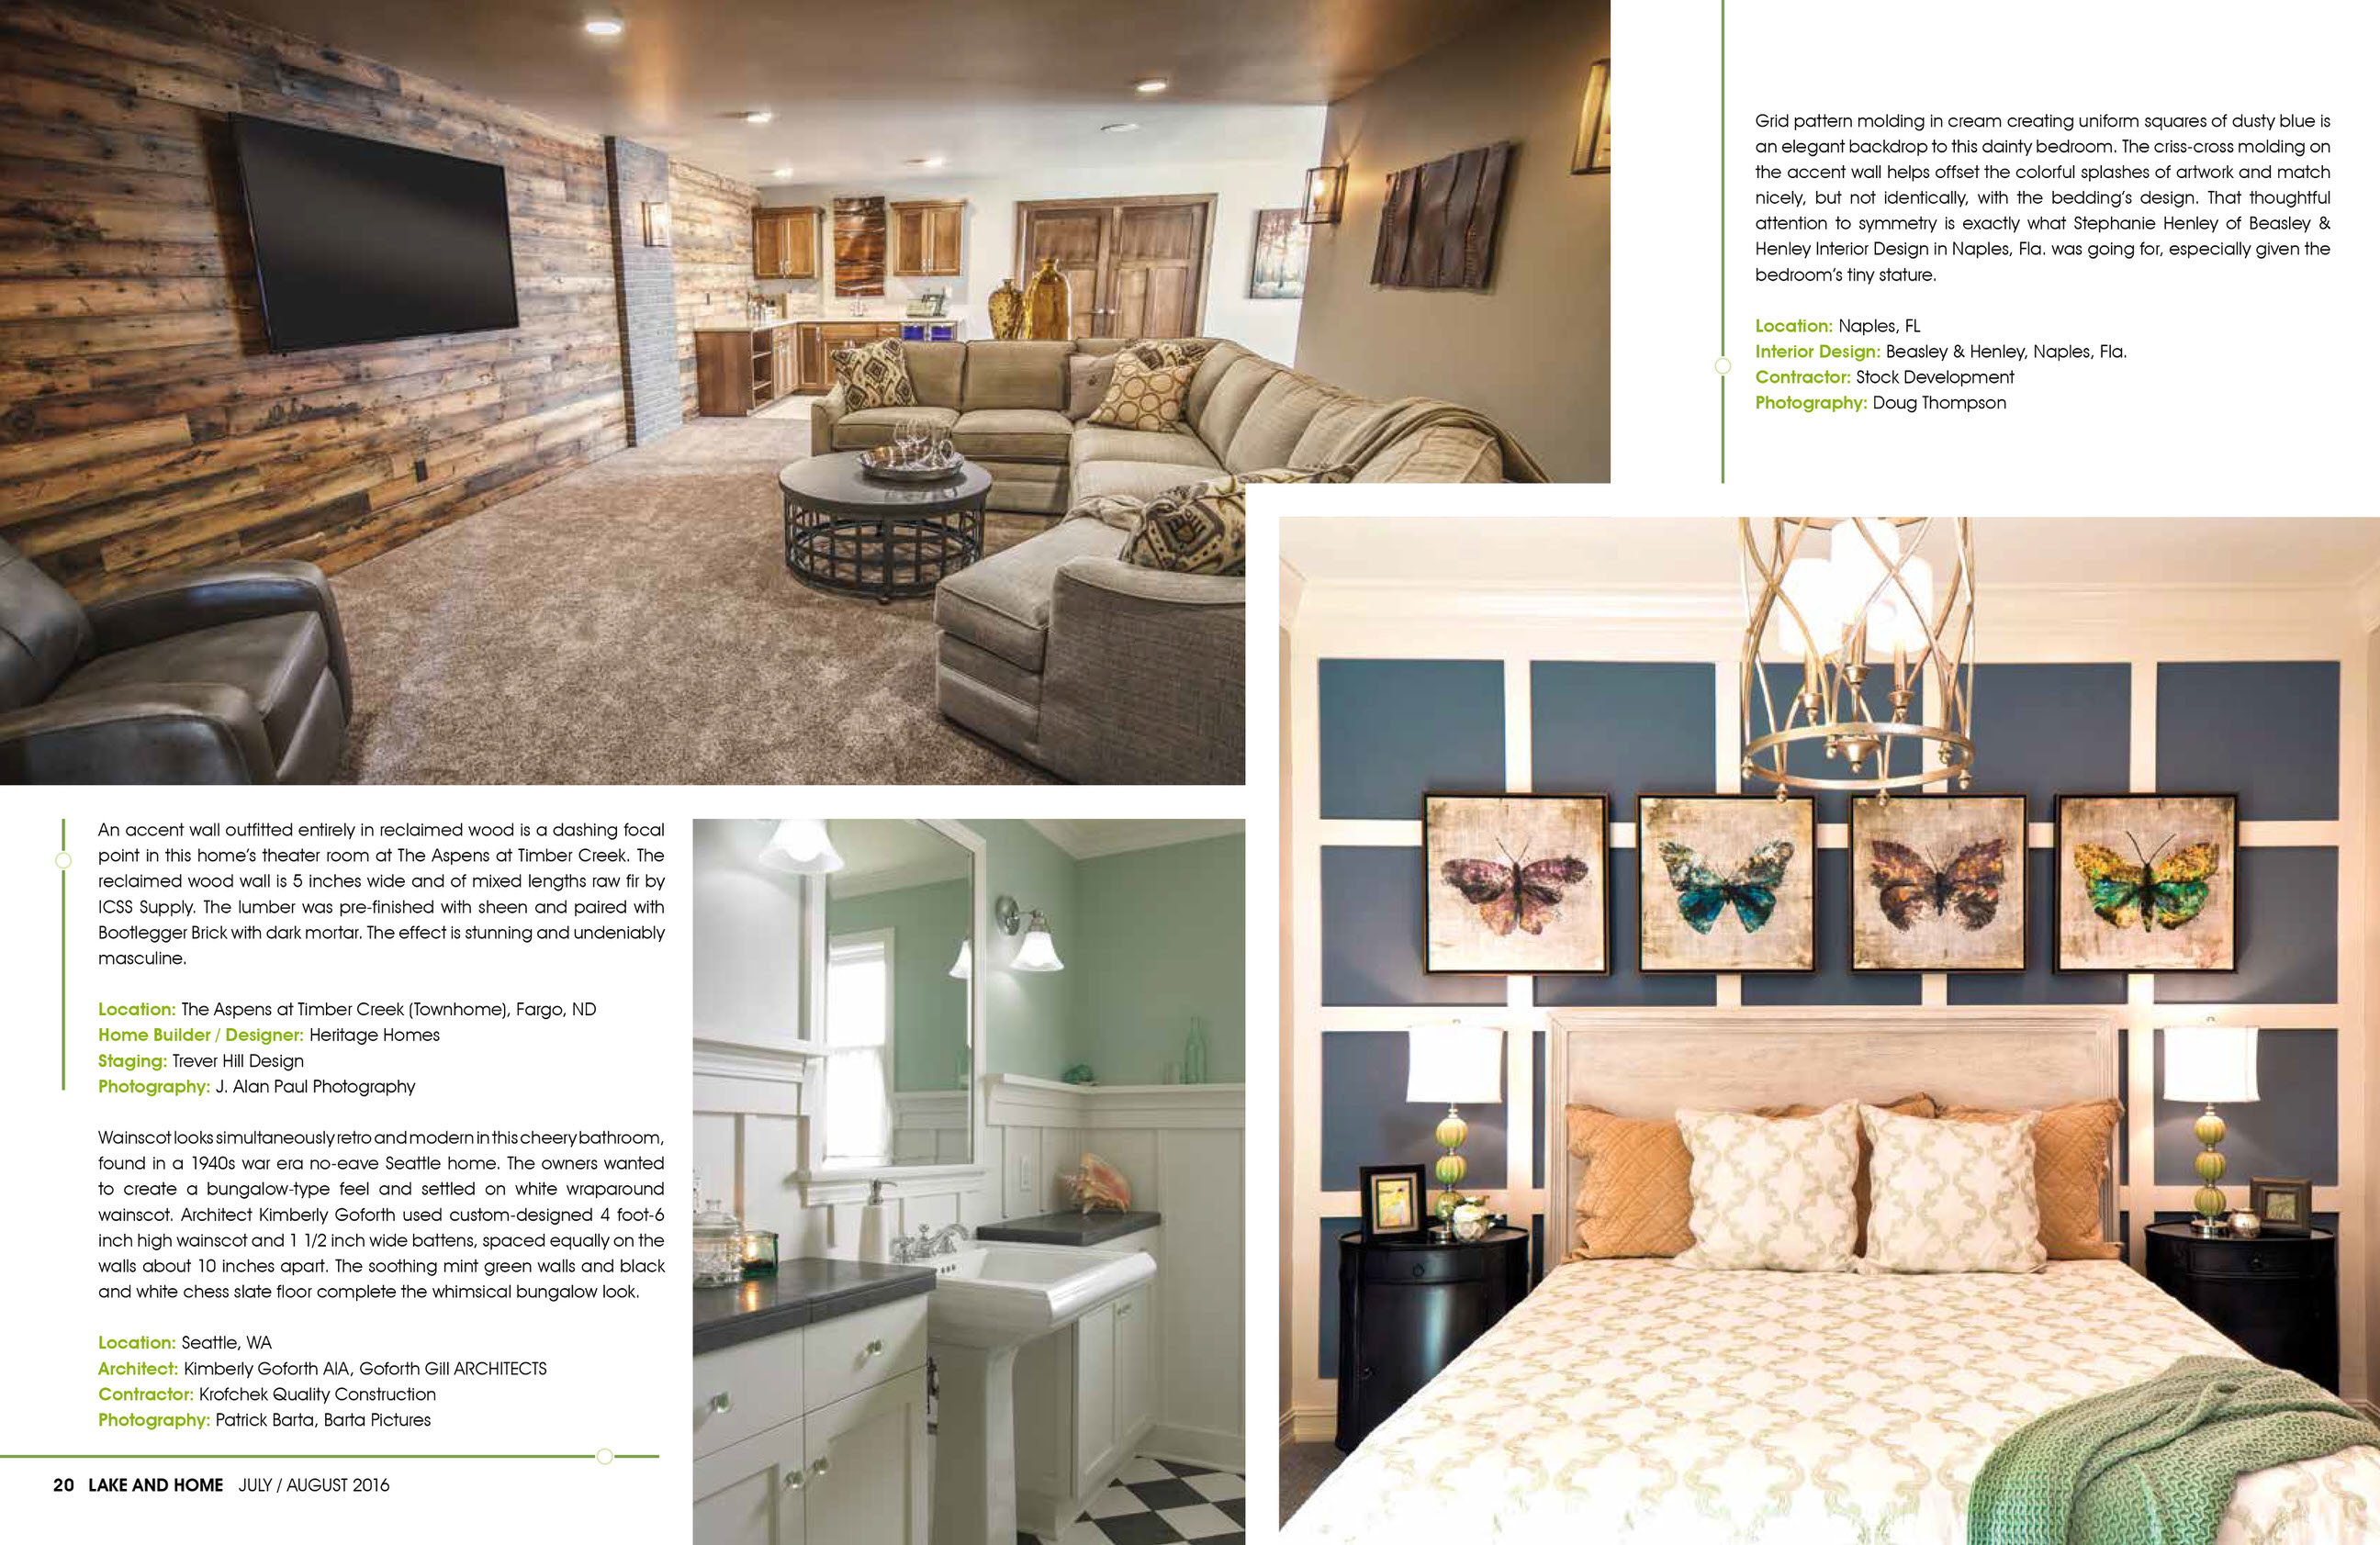 Beautify Your Home With Millwork Trim And Moldings Lake Magazine Feature